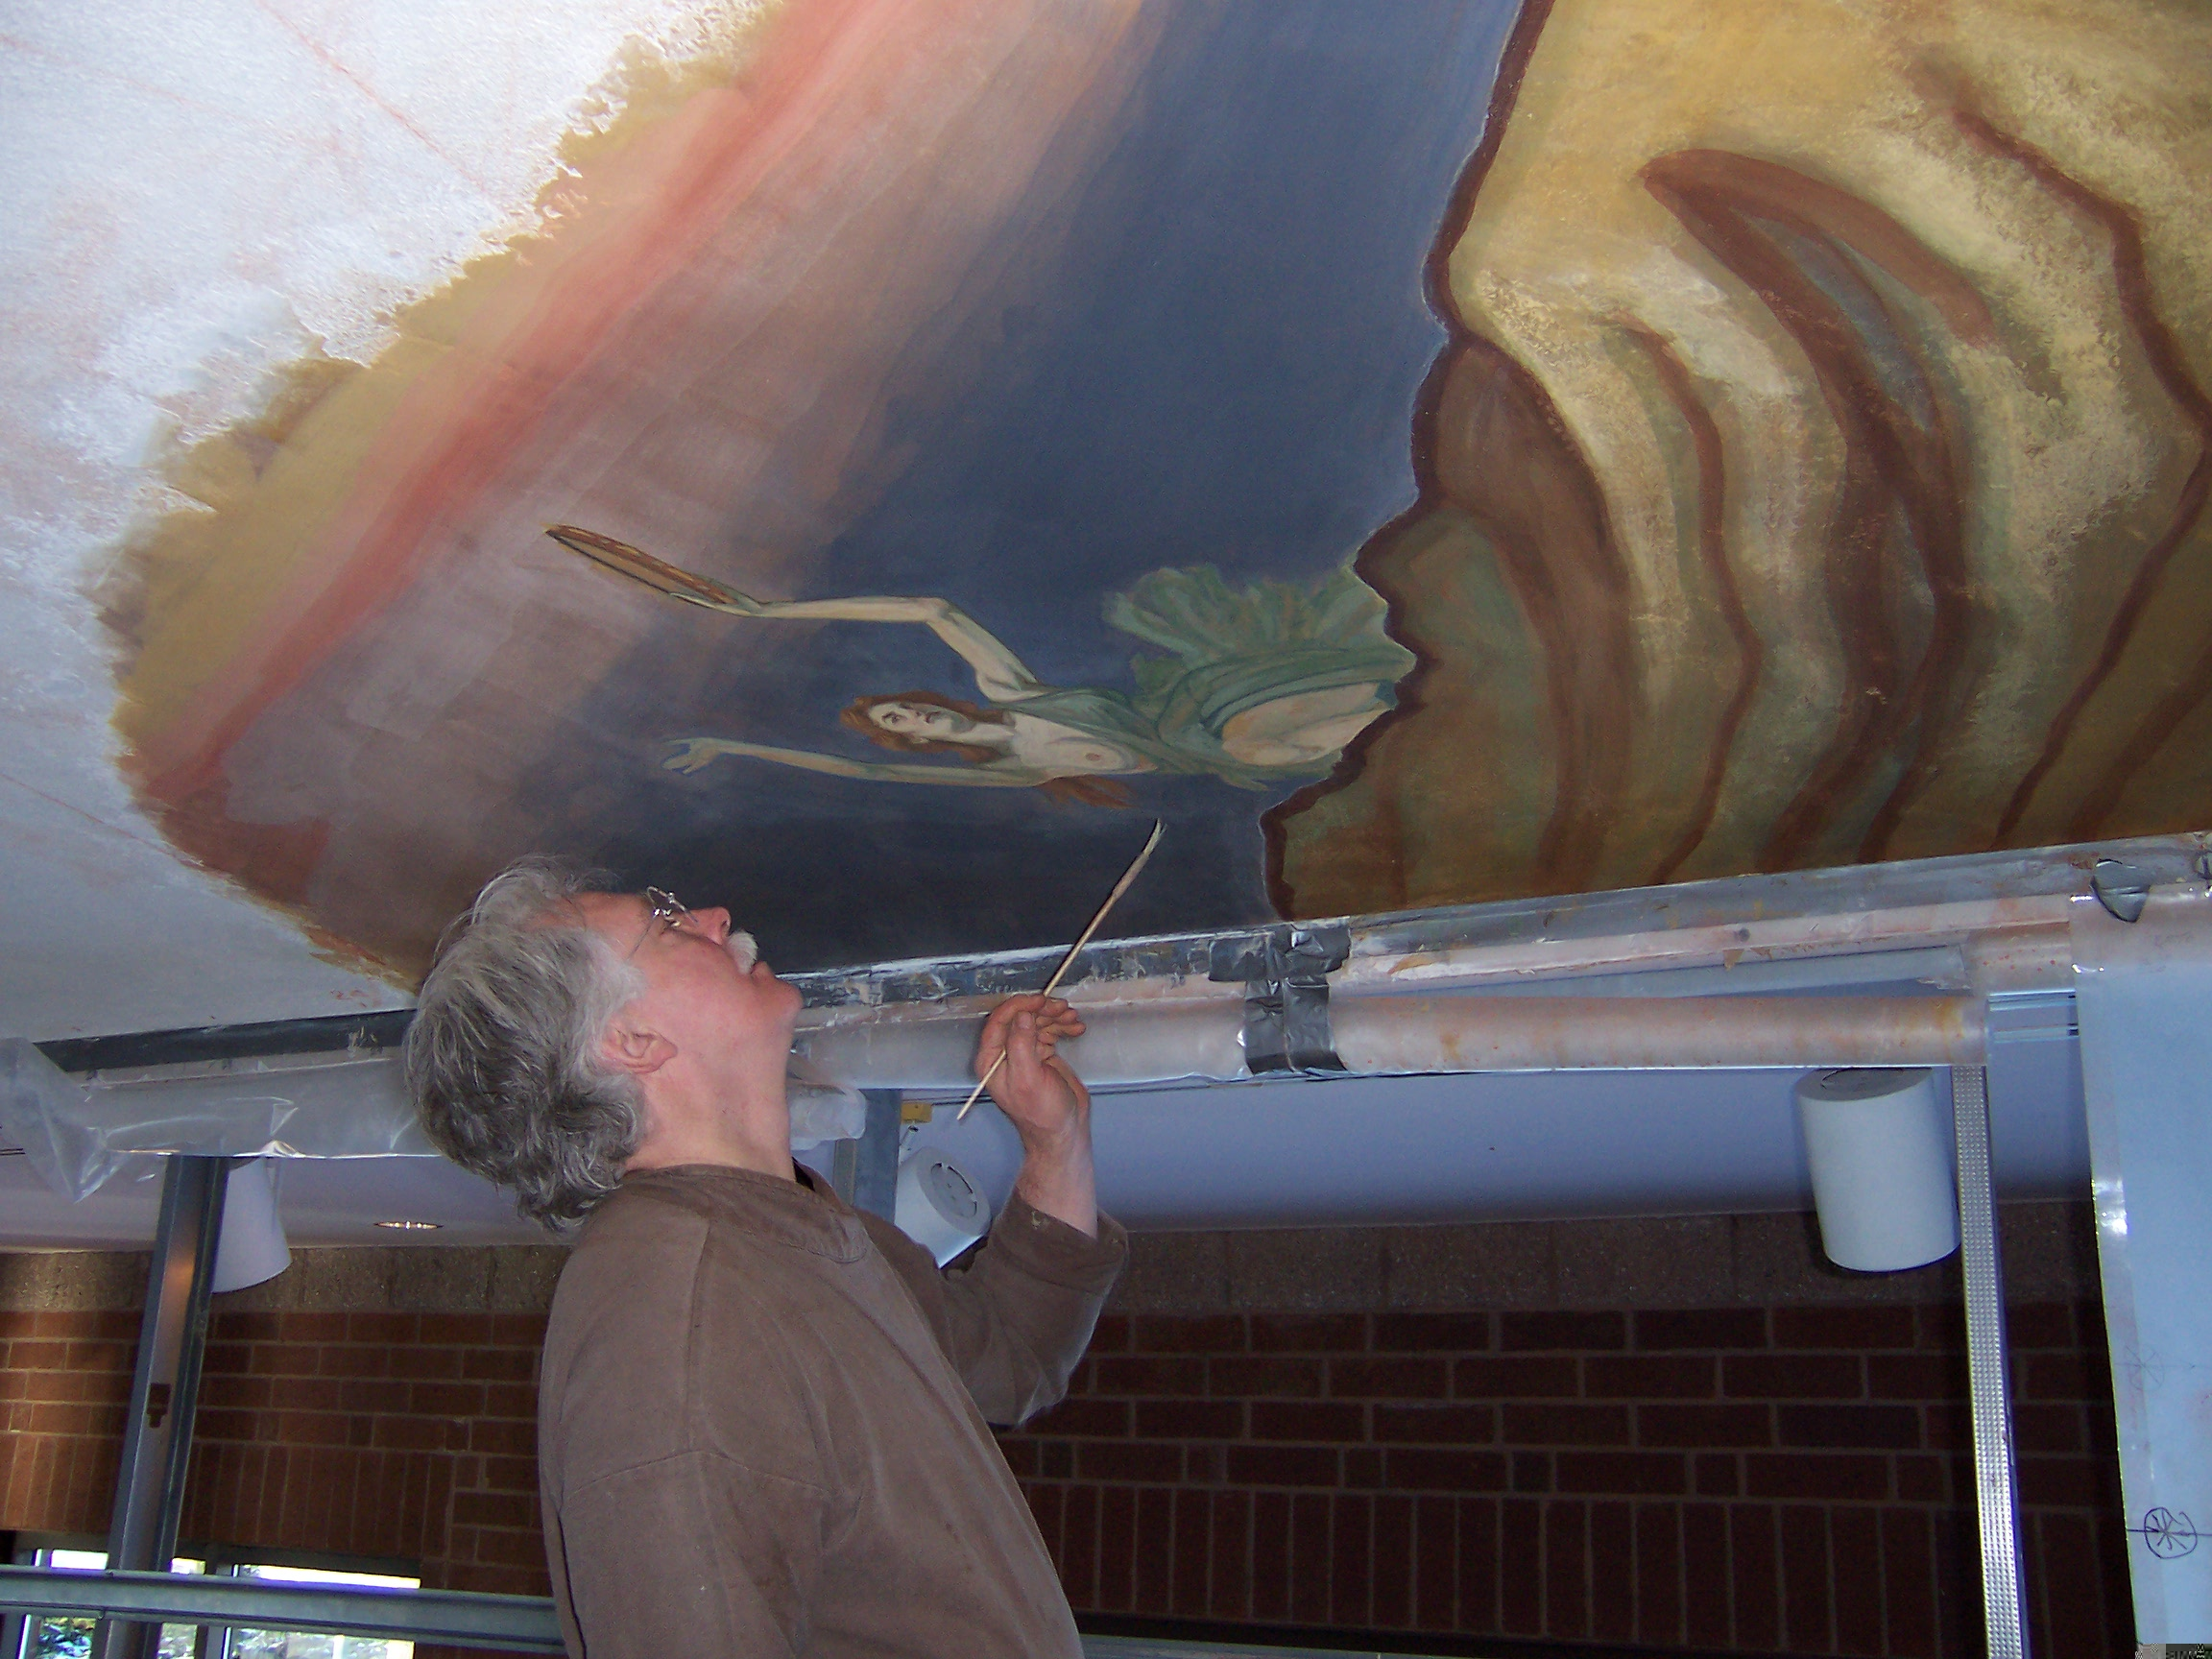 B.F.LongIV working on the Fresco in Community Center of Morganton, NC